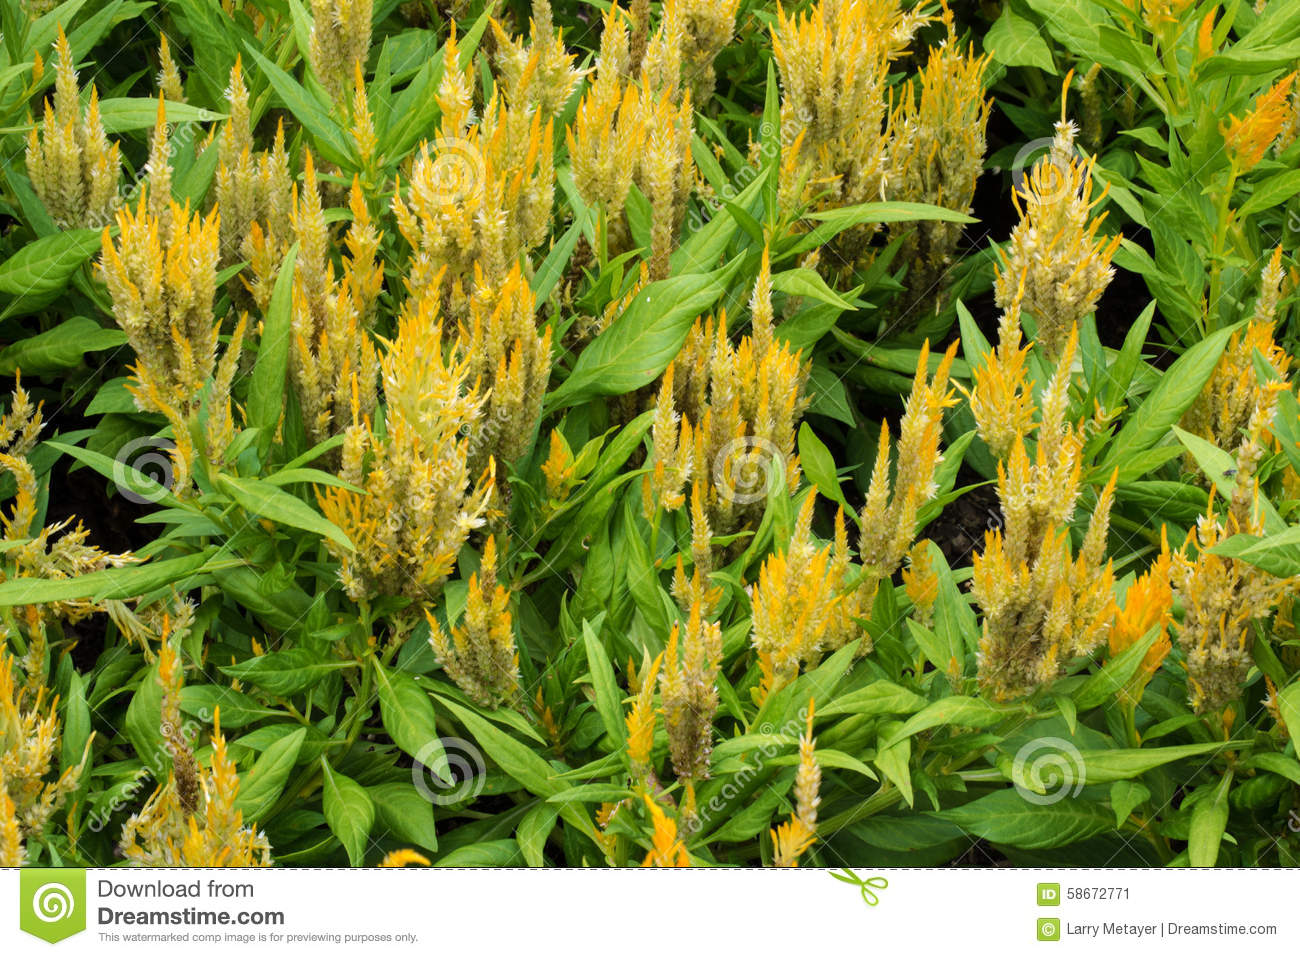 Celosia cristata flowers in bloom stock image image of closeup royalty free stock photo izmirmasajfo Choice Image